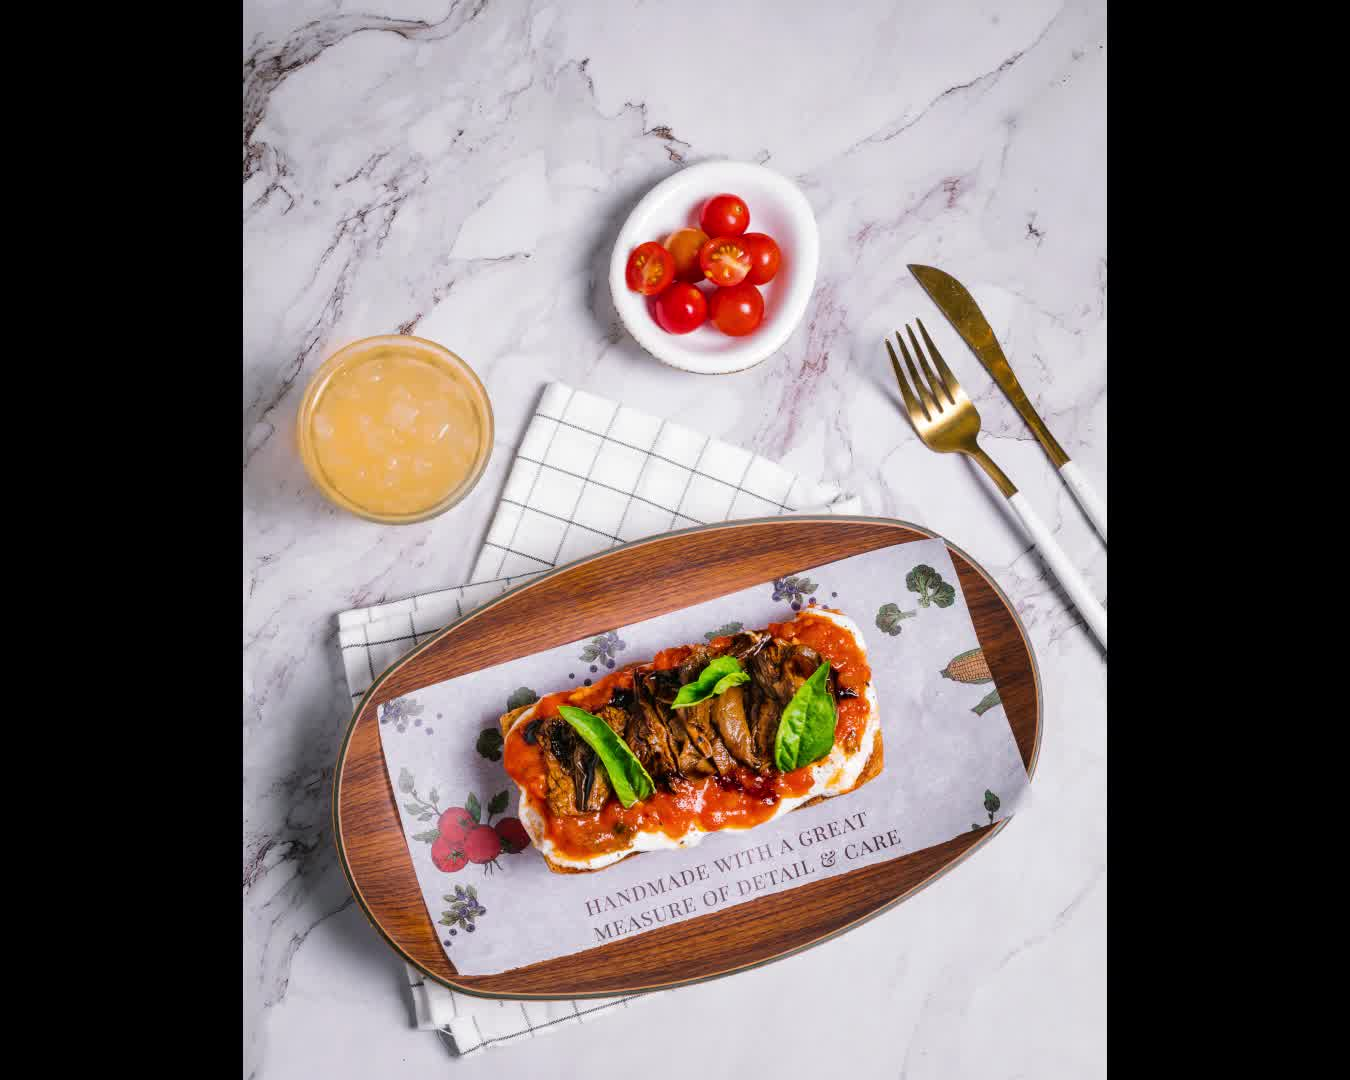 Beautifully-assembled, vibrant and indulgent - spoil yourself this weekend with our signature Straciatella Toasts at The Cafe by Foodhall  Creatively curated by Chef Aabhas, each is made with our house-made ciabatta, layered with impossibly-soft straciatella cheese and a marvellous medley of toppings from artichokes and sautéed wild mushrooms, to crisp bacon and honey.  Tuck in at The Cafe by Foodhall, at a Foodhall near you!  #BuonAppetito #ForTheLoveofCheese #FoodhallIndia #Straciatella #StraciatellaToast #TheCafebyFoodhall #WeekendBrunch #BrunchTime